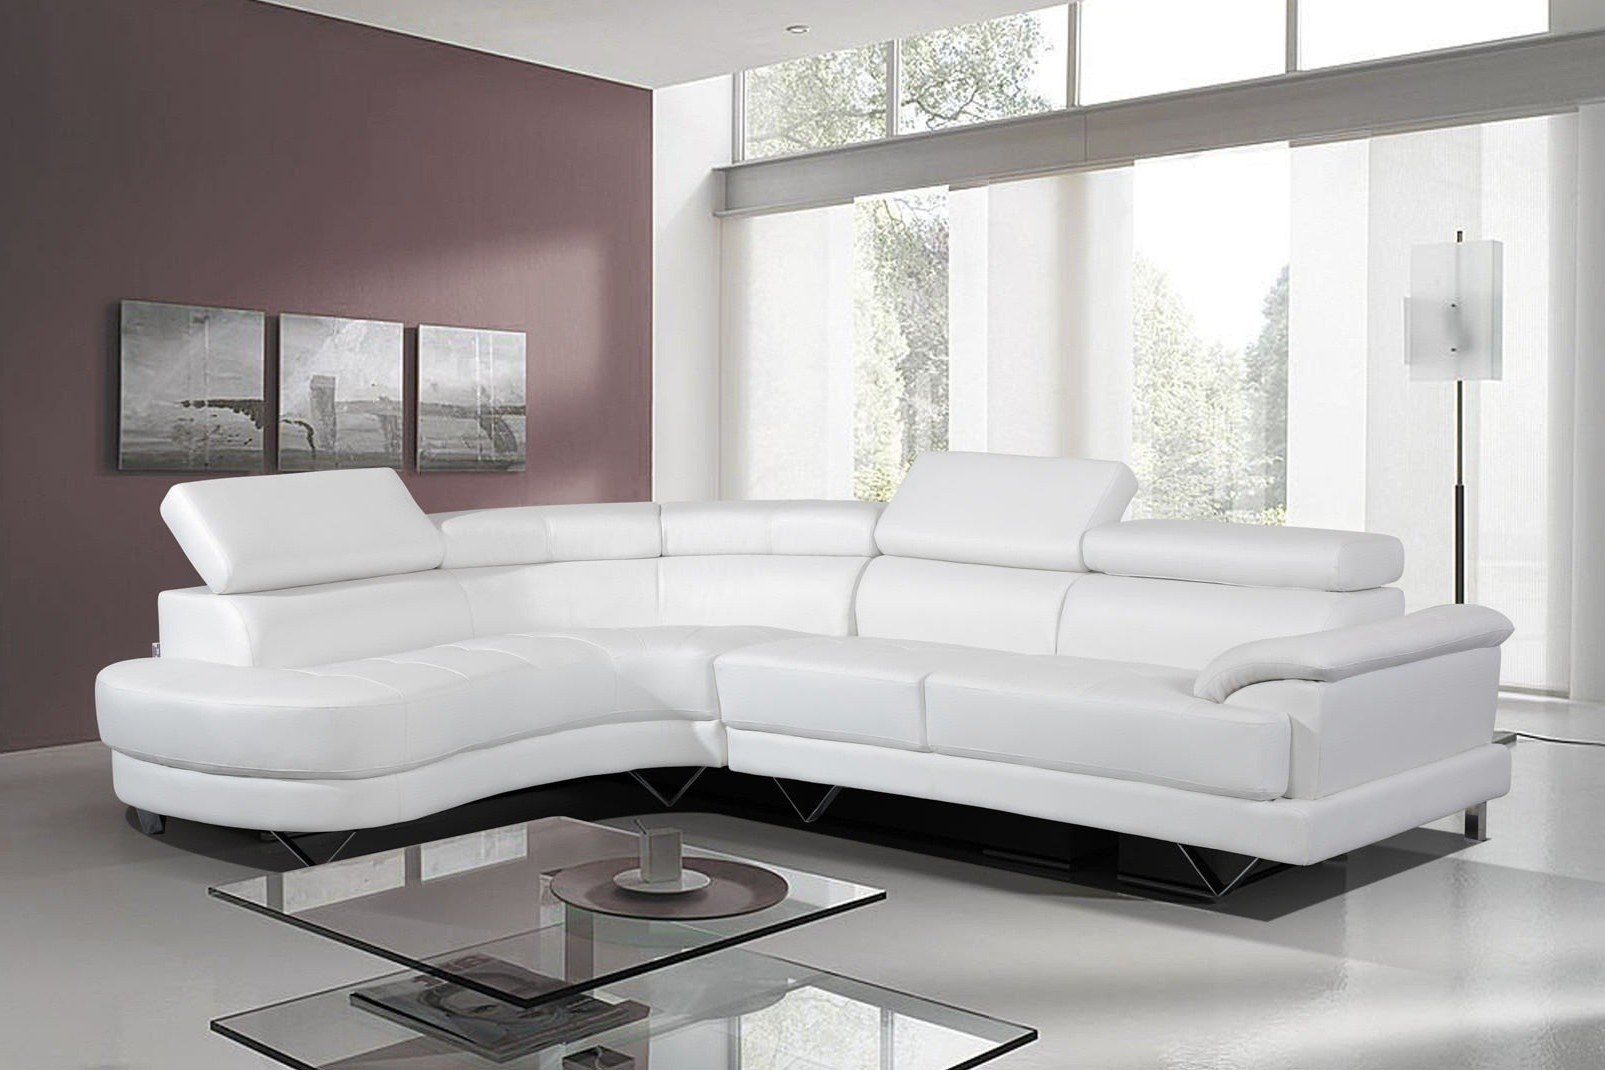 Widely Used Corner Sofas In Leather 31 With Corner Sofas In Leather Throughout White Leather Corner Sofas (View 20 of 20)